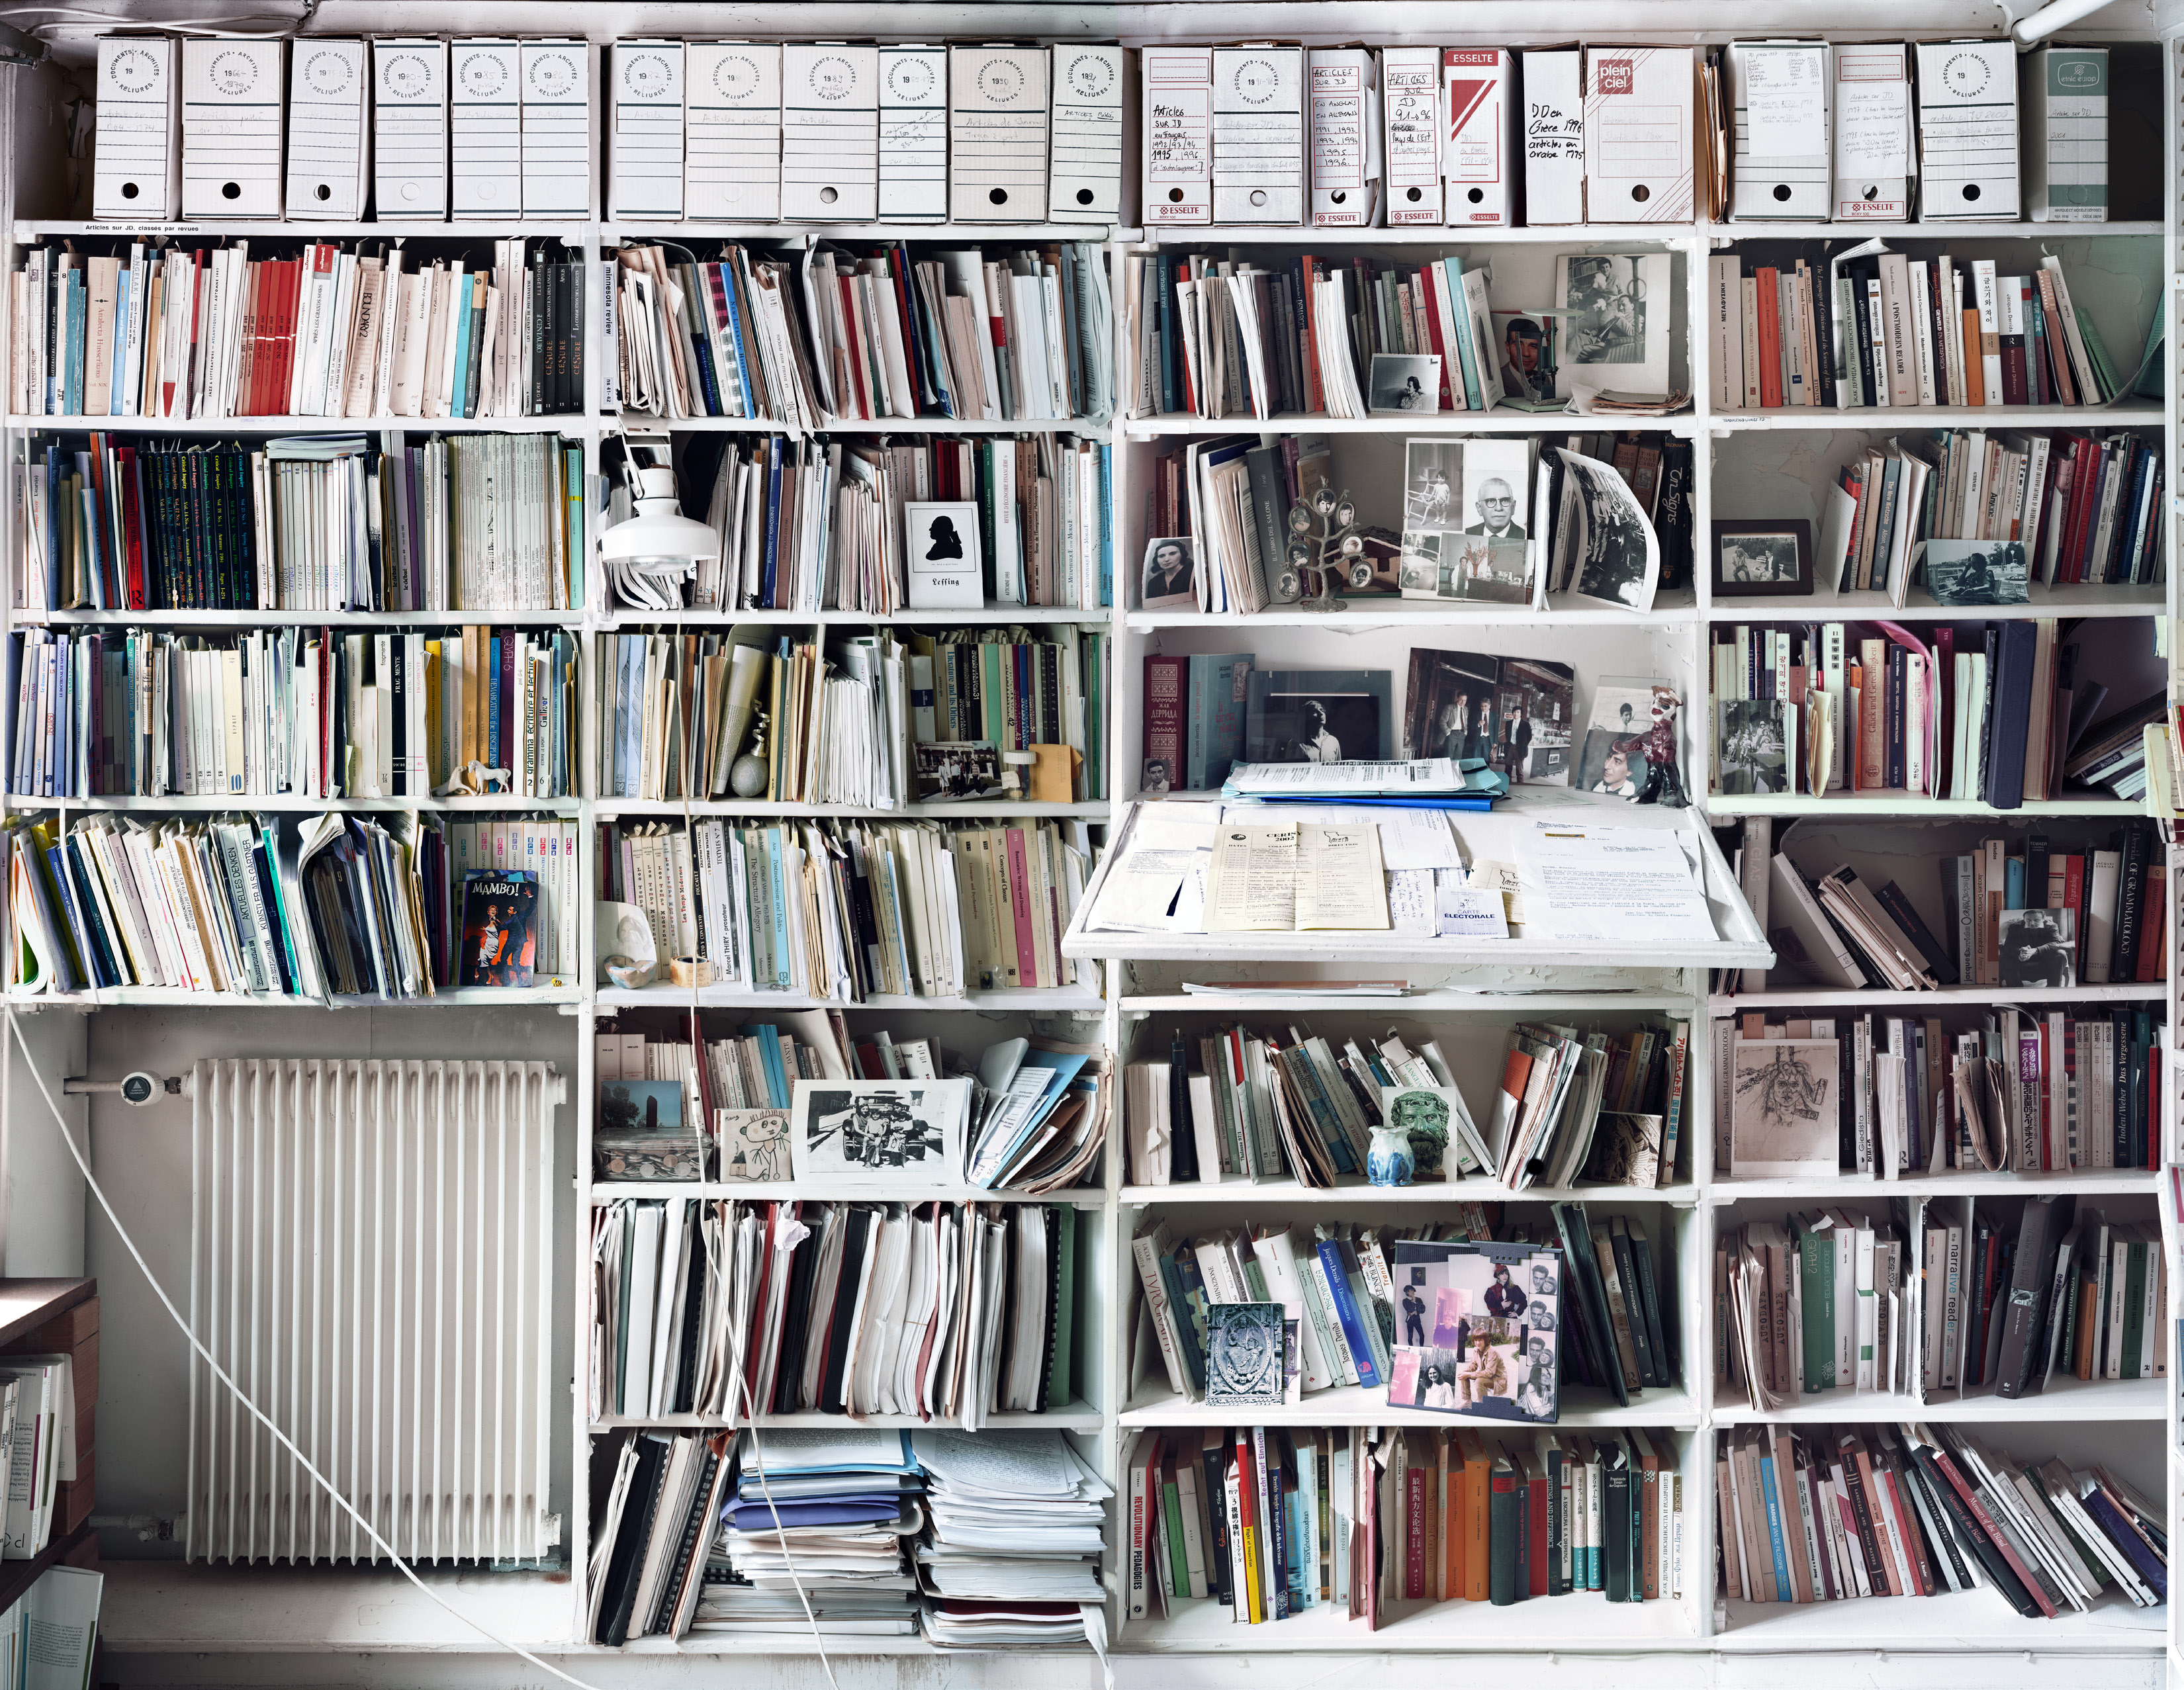 A view of part of Jacques Derrida's library in his home in Ris Organgis.